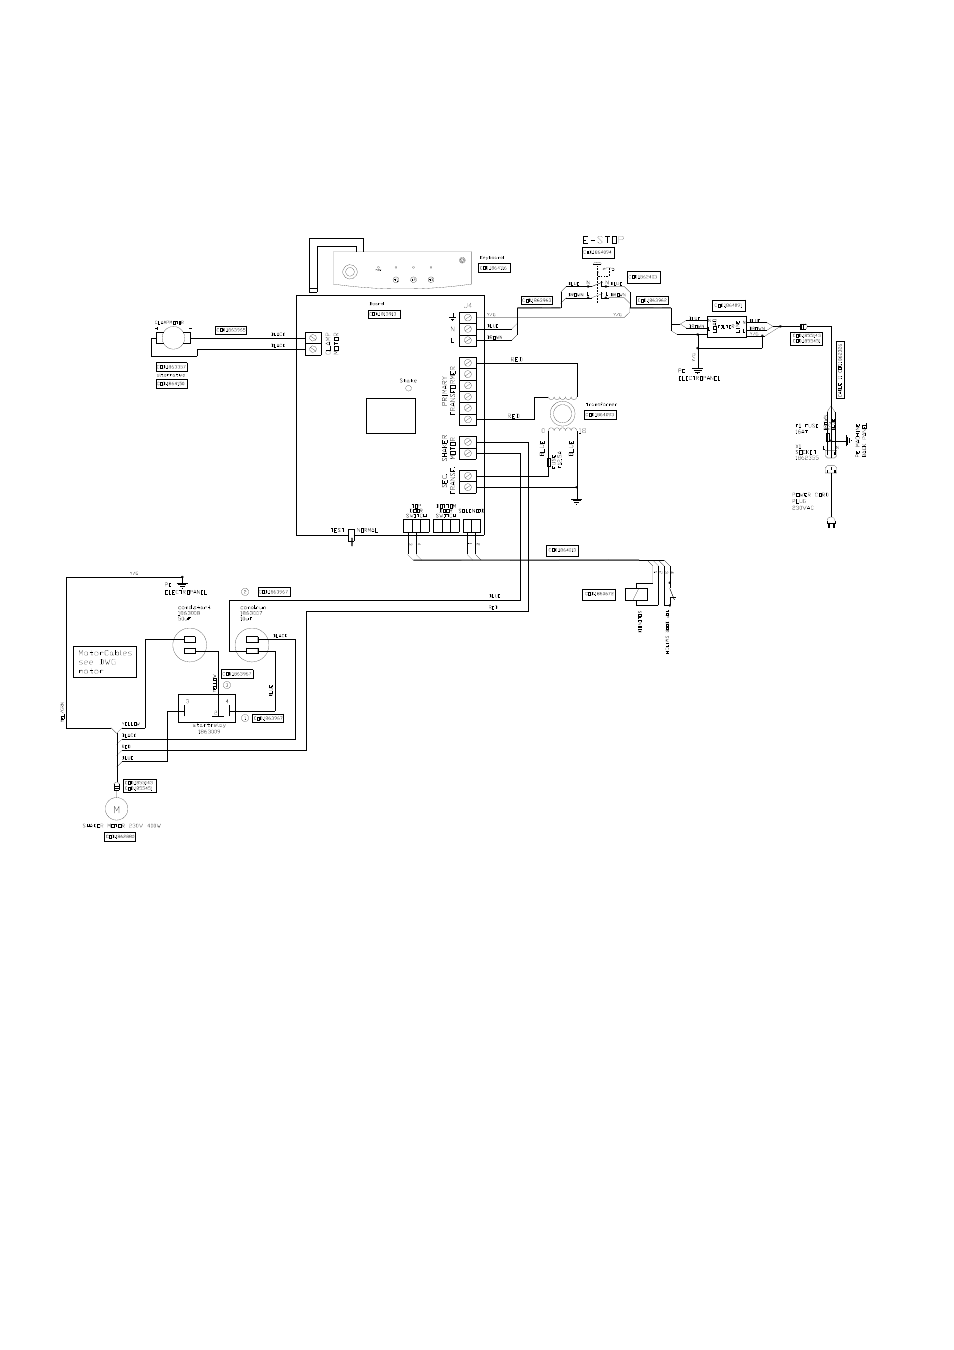 electrical wiring diagram | fast & fluid sk350 user manual | page 17 / 19